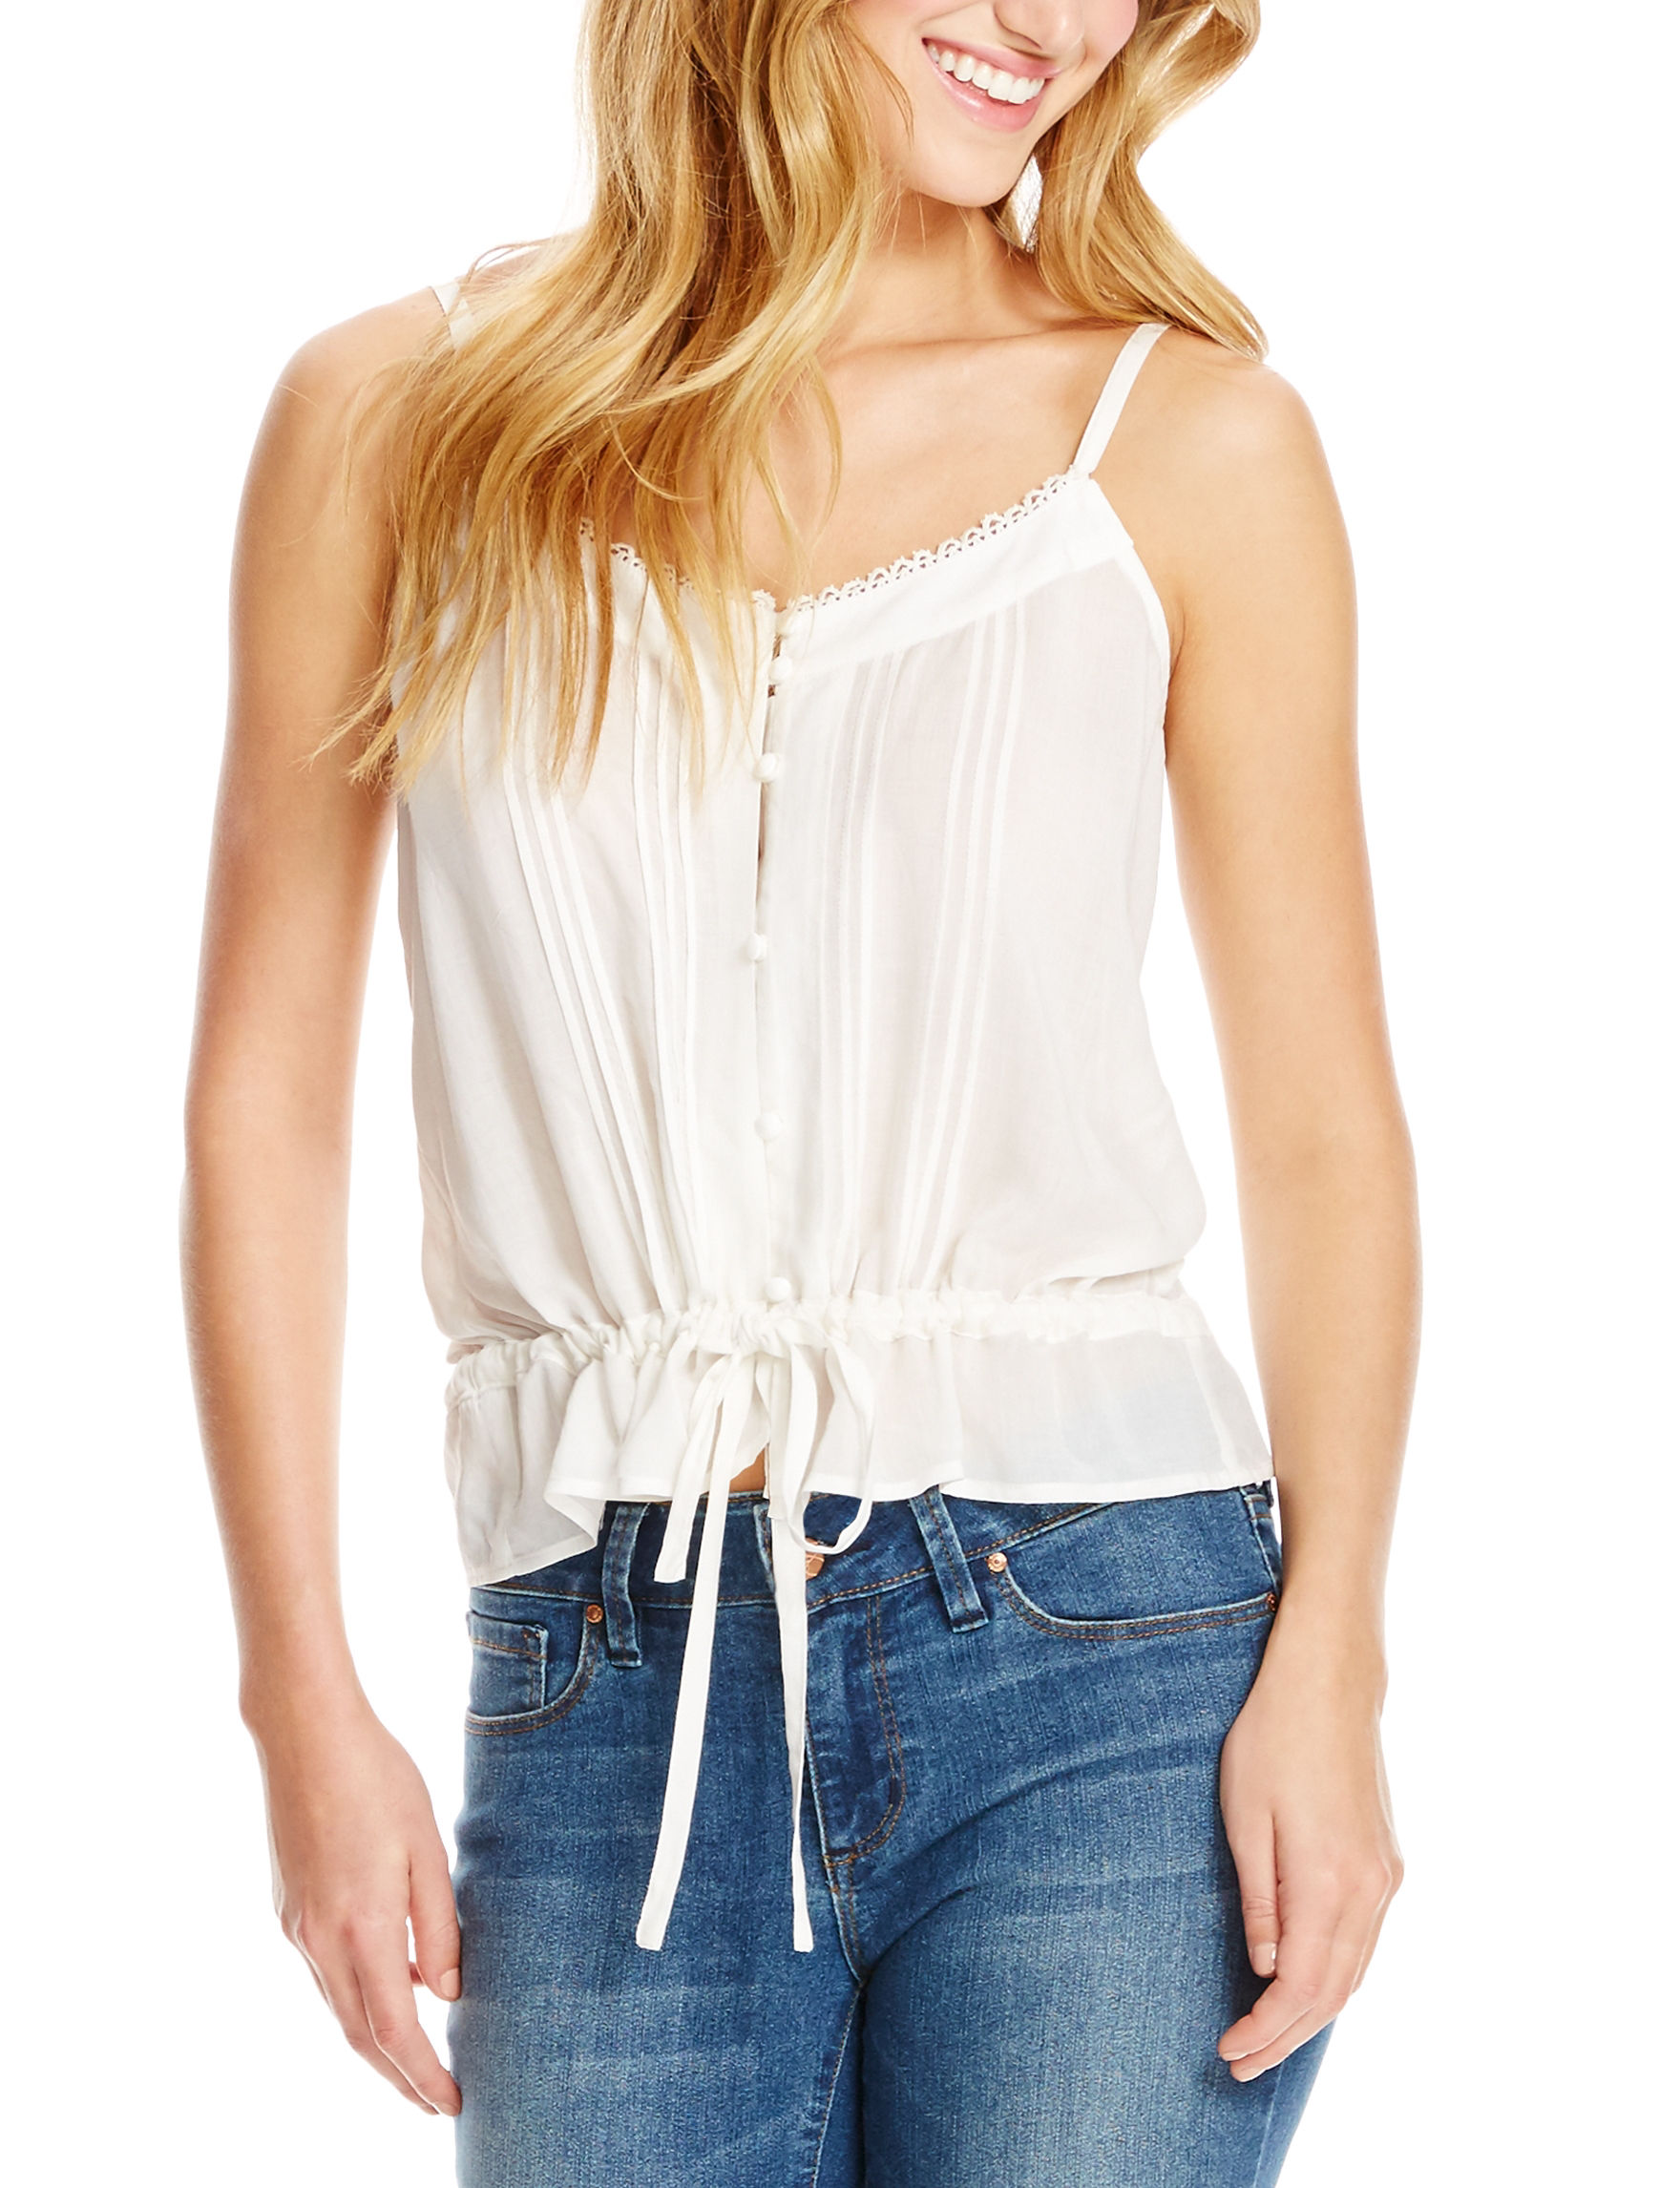 Jessica Simpson White Everyday & Casual